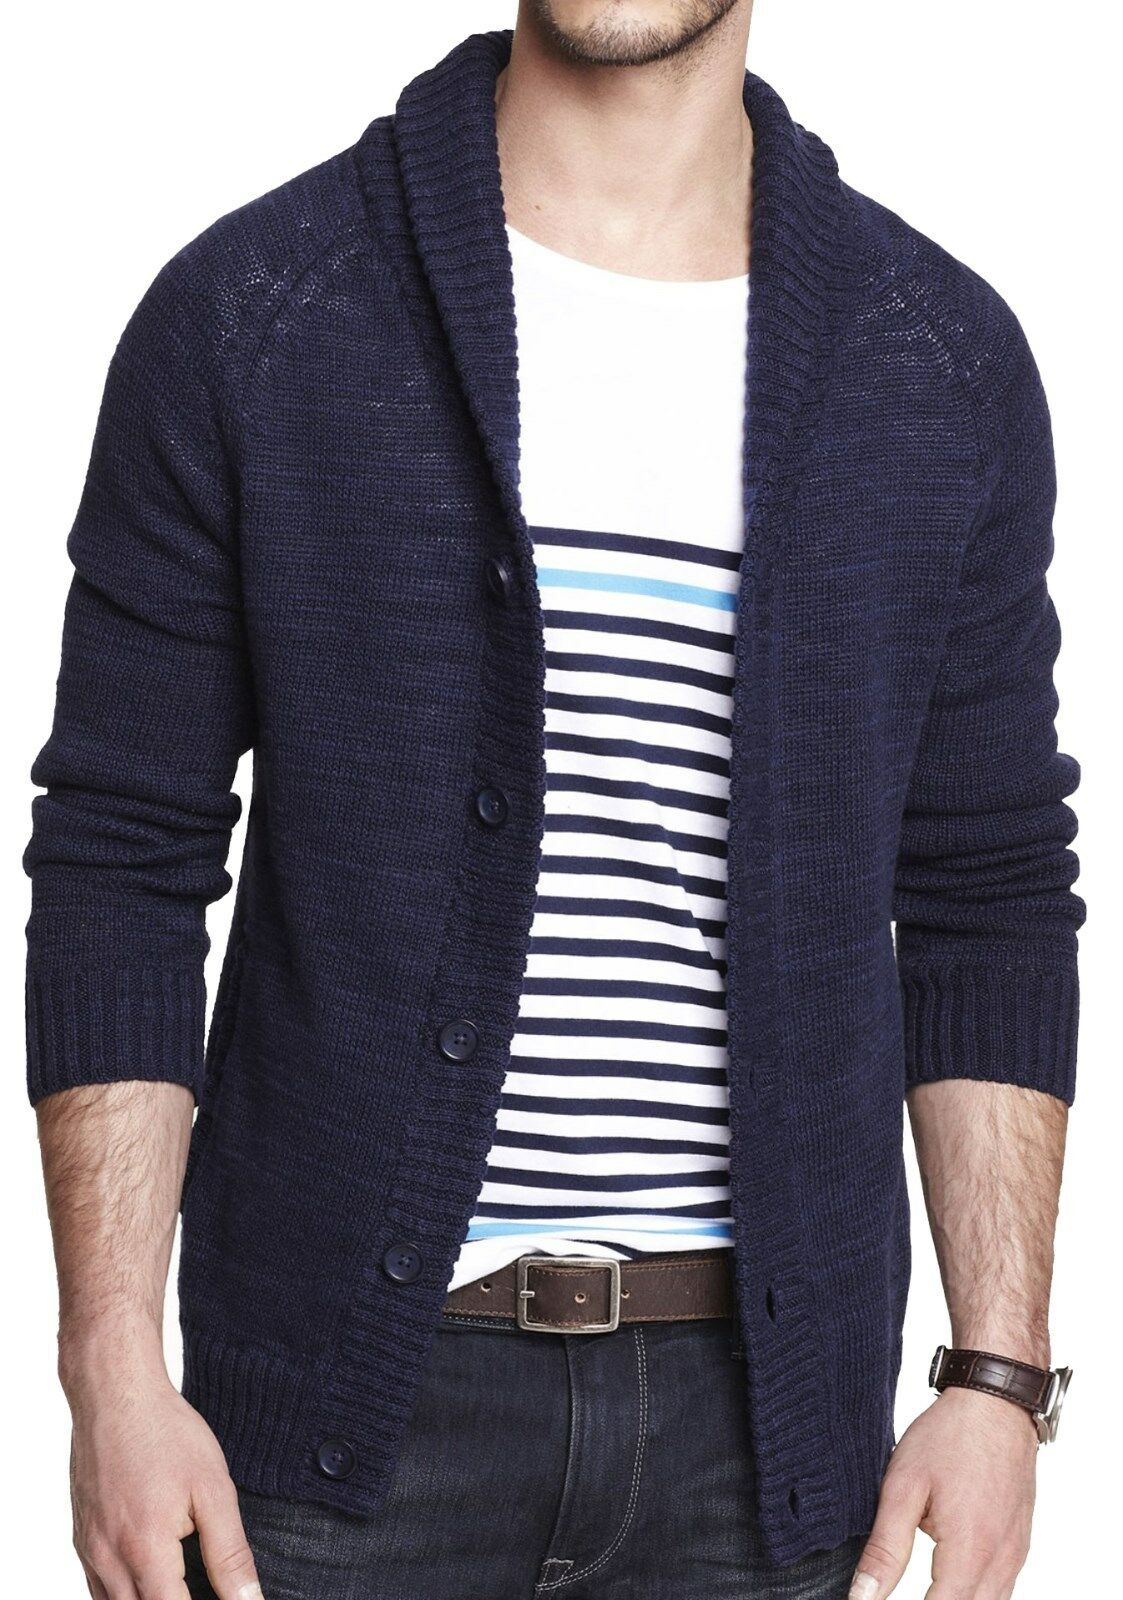 New EXPRESS  Herren Linen Cotton Ribbed Shawl Cardigan Sweater, NWT【XL】【110】LAST